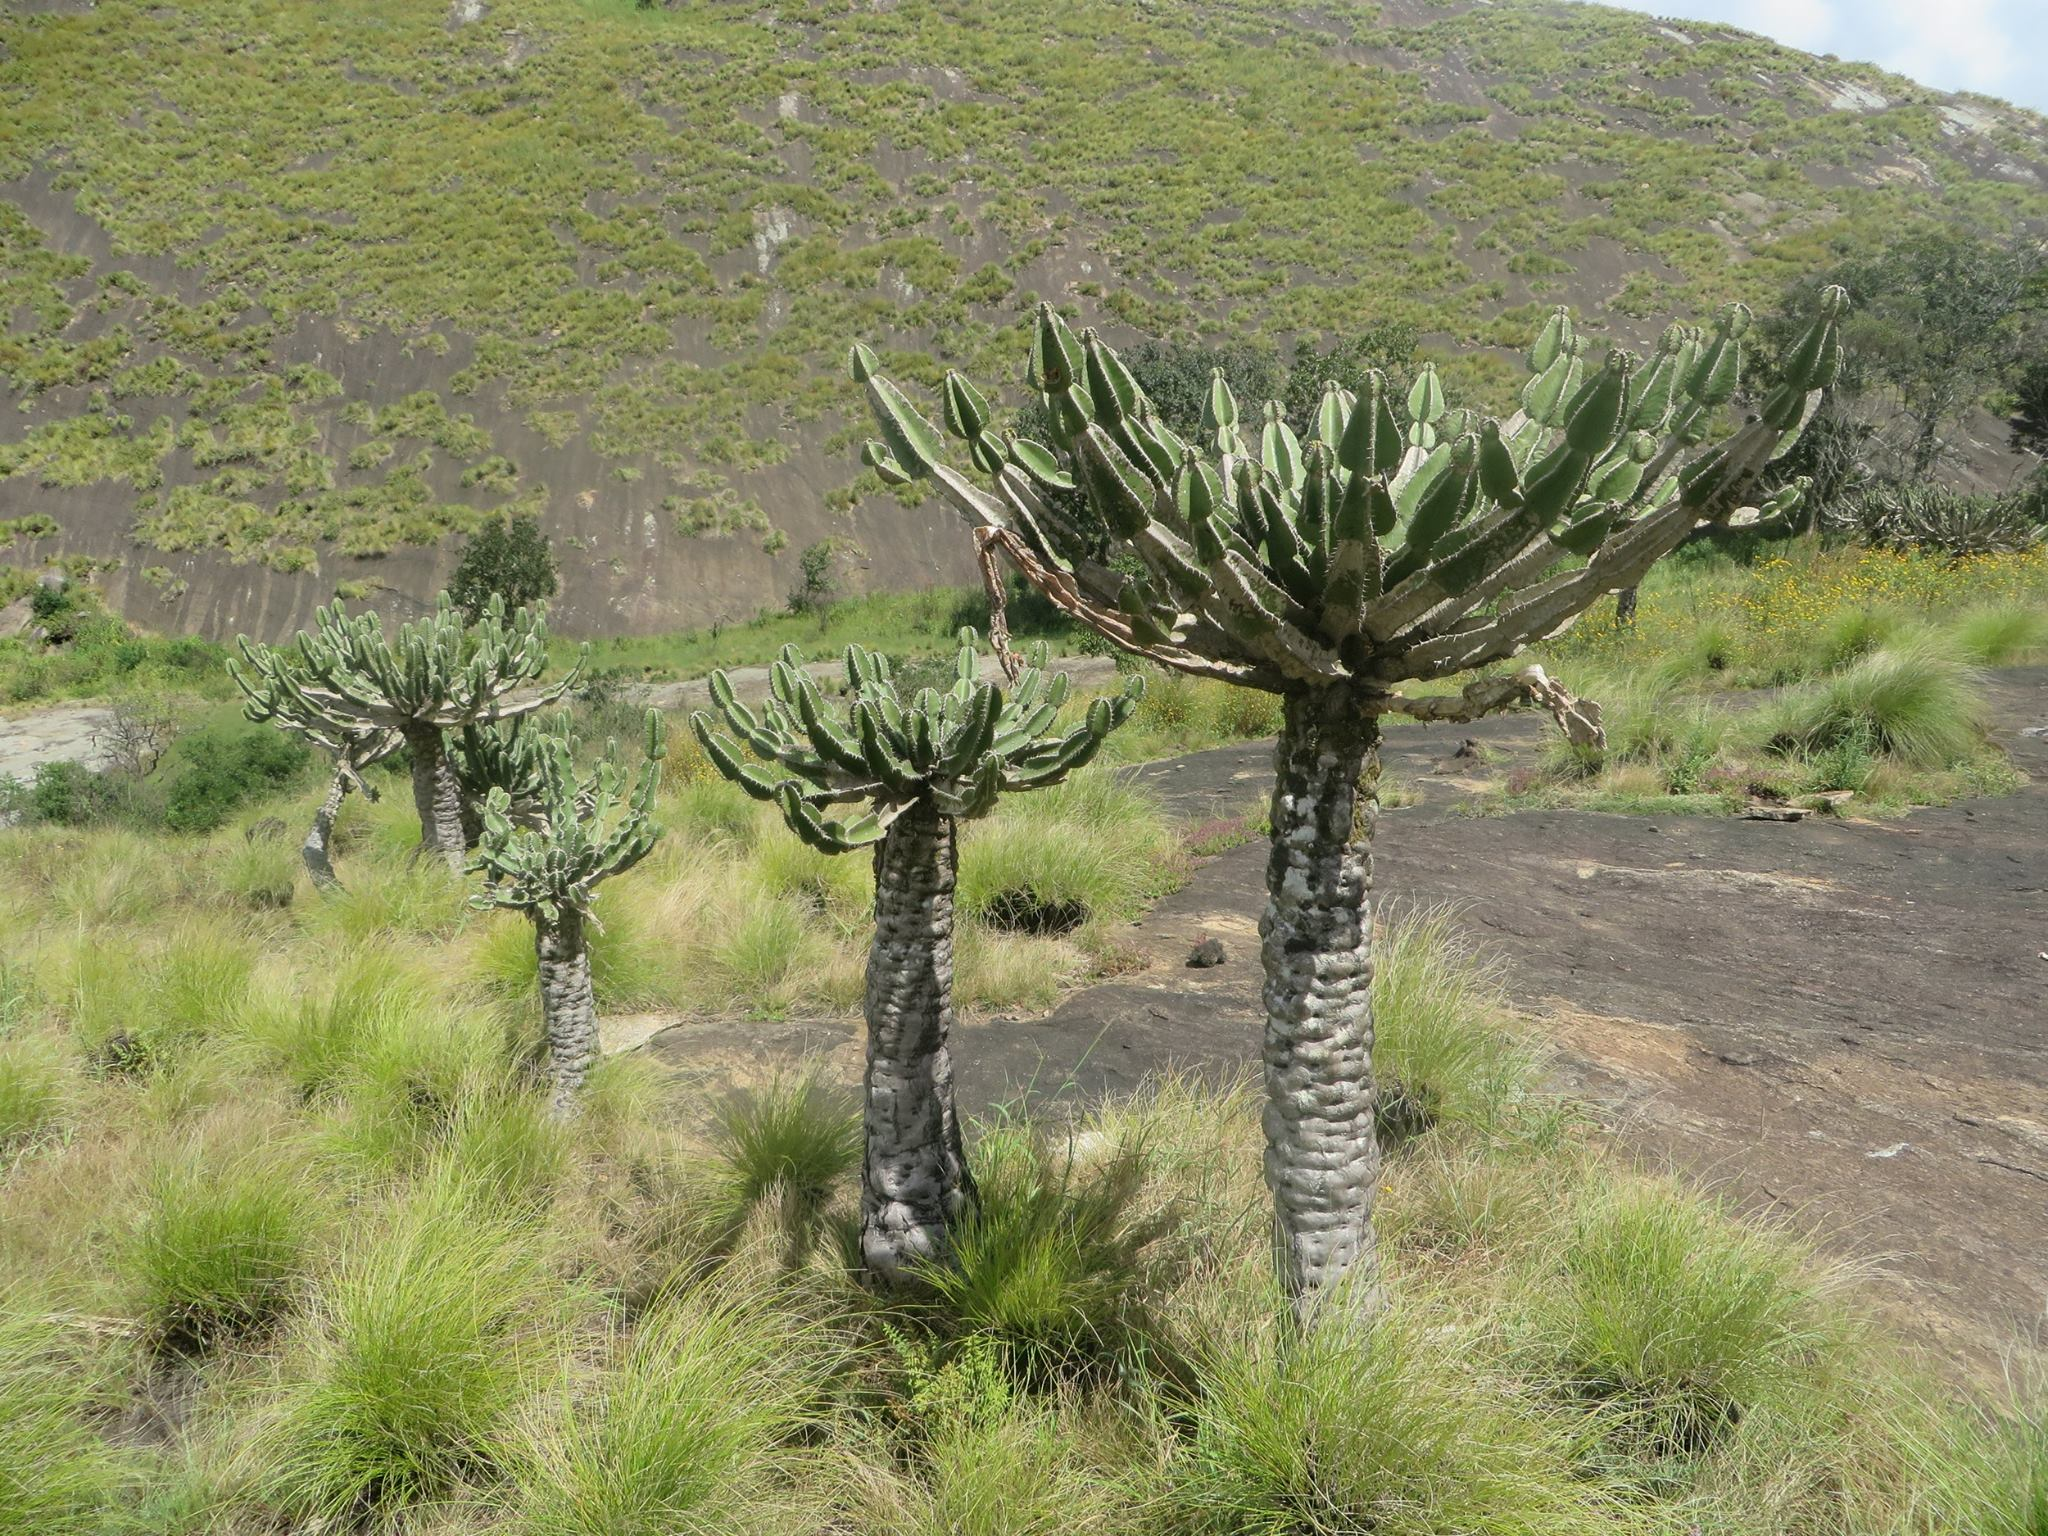 Euphorbia cooperi from zembe mountain in manica province